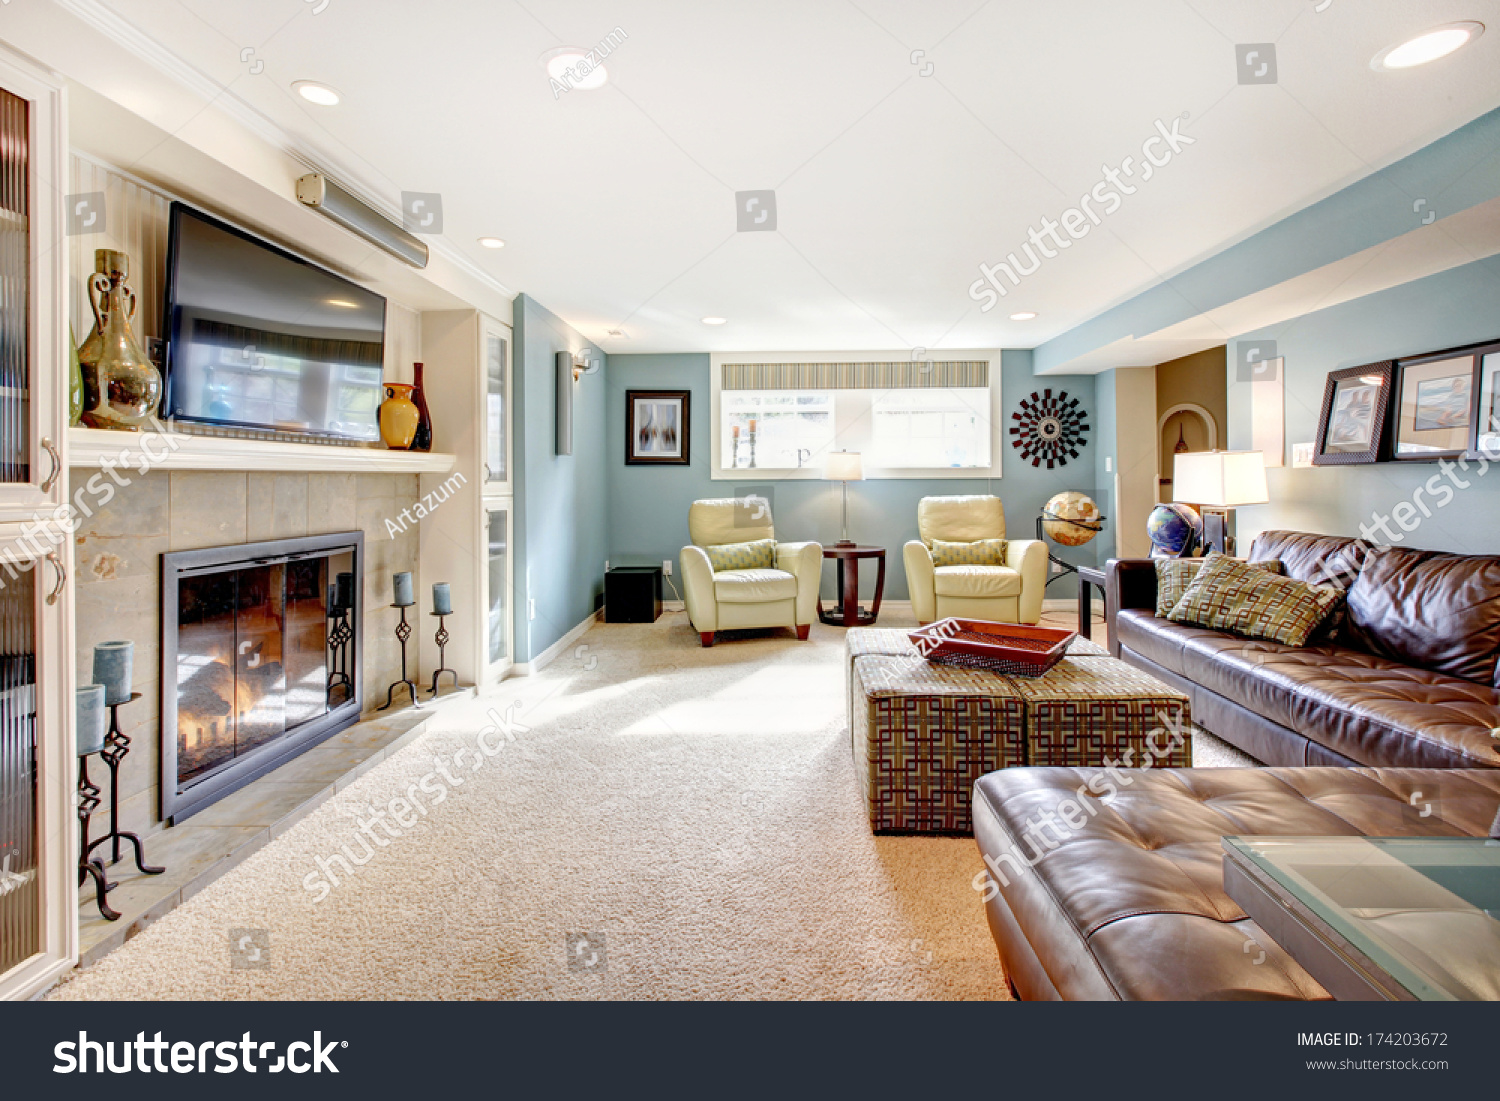 Light Blue Living Room Leather Furniture Stock Photo 174203672 ...